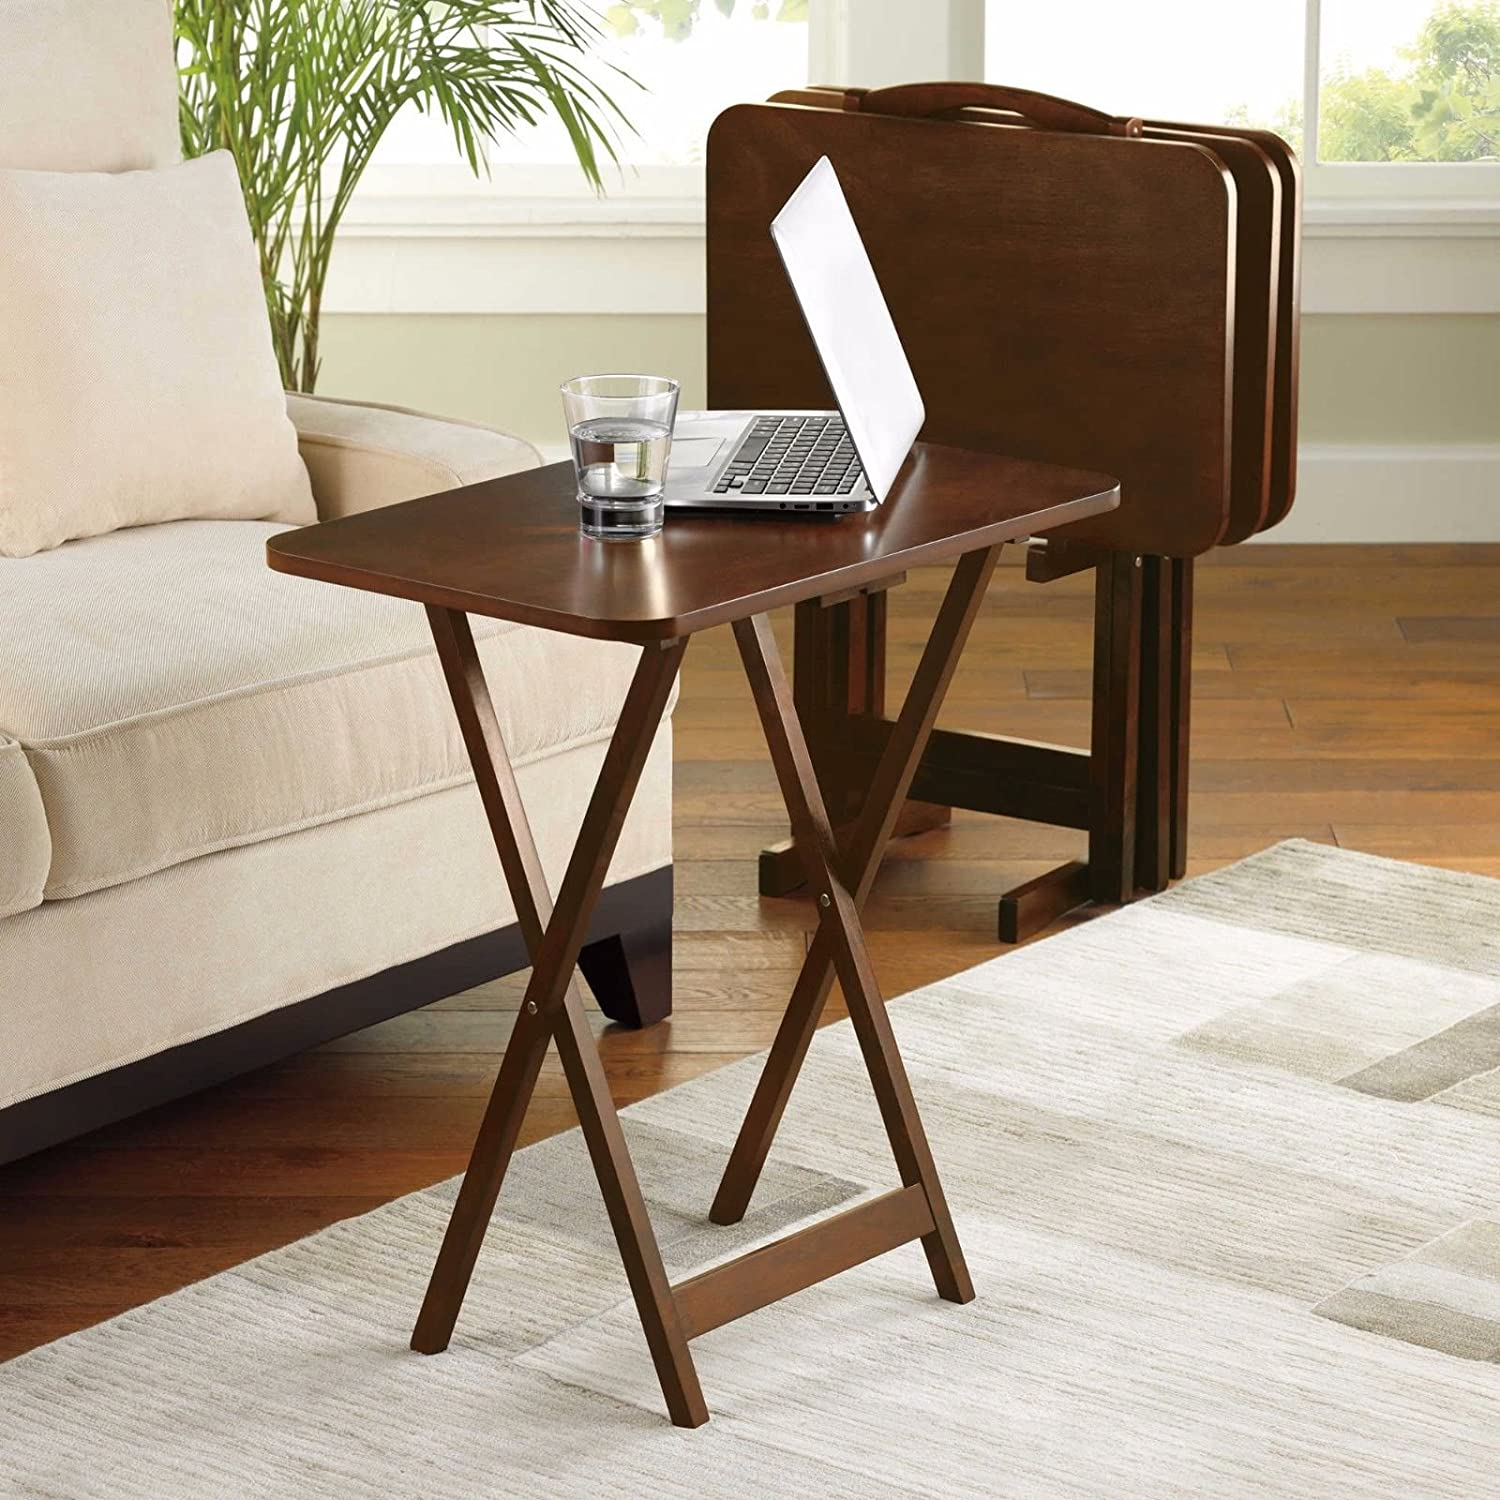 Amazon.com 5 Piece Tray Table Set Folding Wood TV Game Snack Dinner Couch Laptop Stand (1) Kitchen \u0026 Dining : set of tray tables - pezcame.com